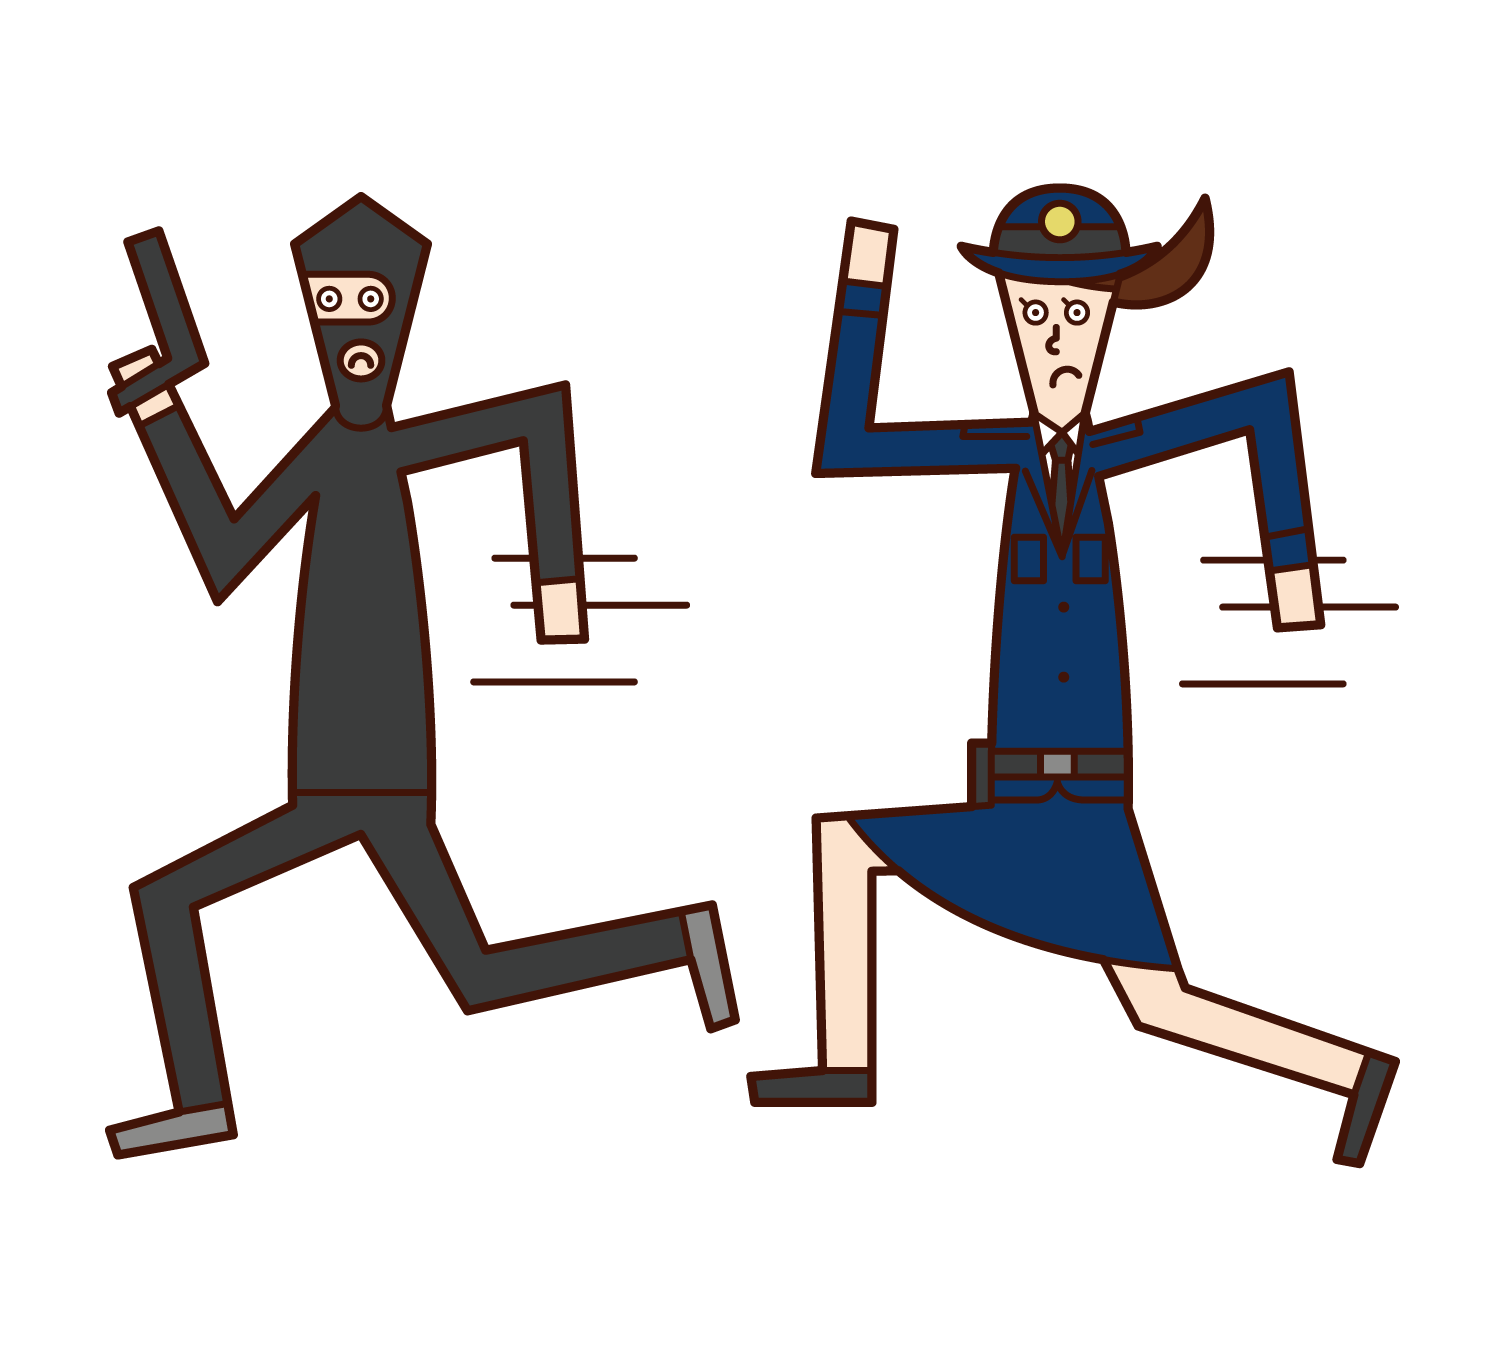 Illustration of a police officer (woman) chasing a thief